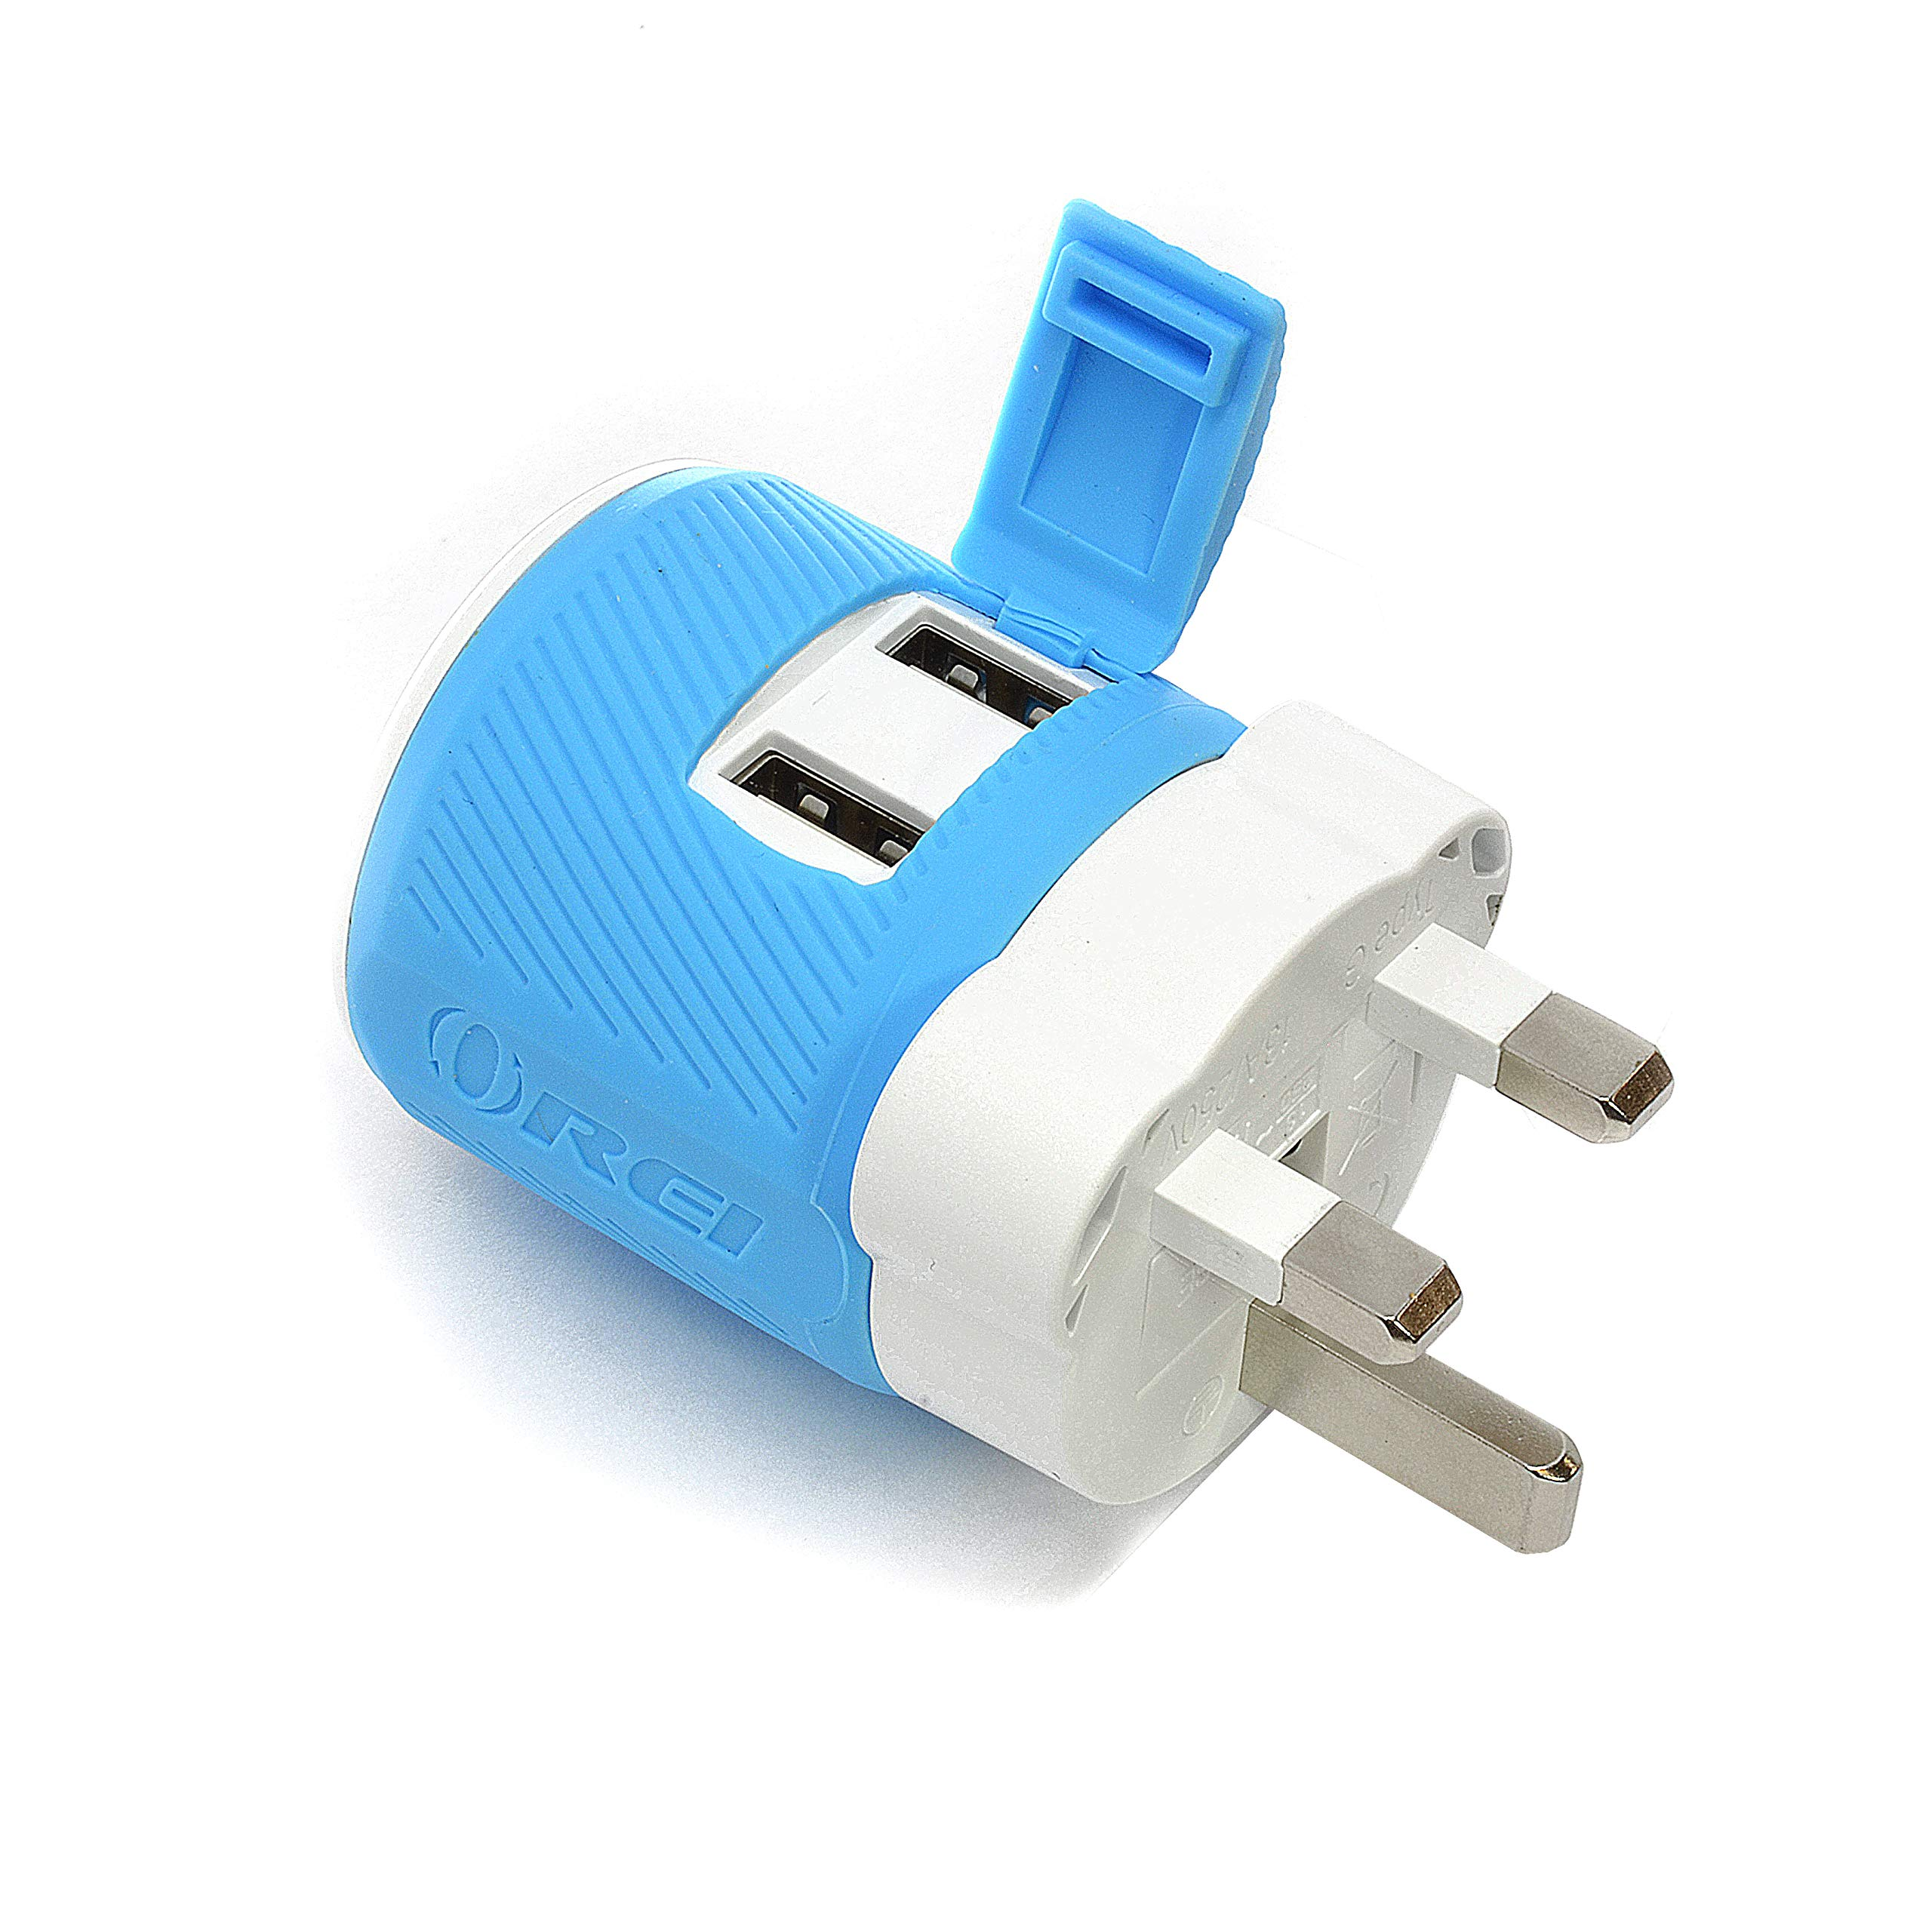 Orei U2U-7 OREI UK, Ireland, Dubai Travel Plug Adapter - Dual USB - Surge Protection - Type G